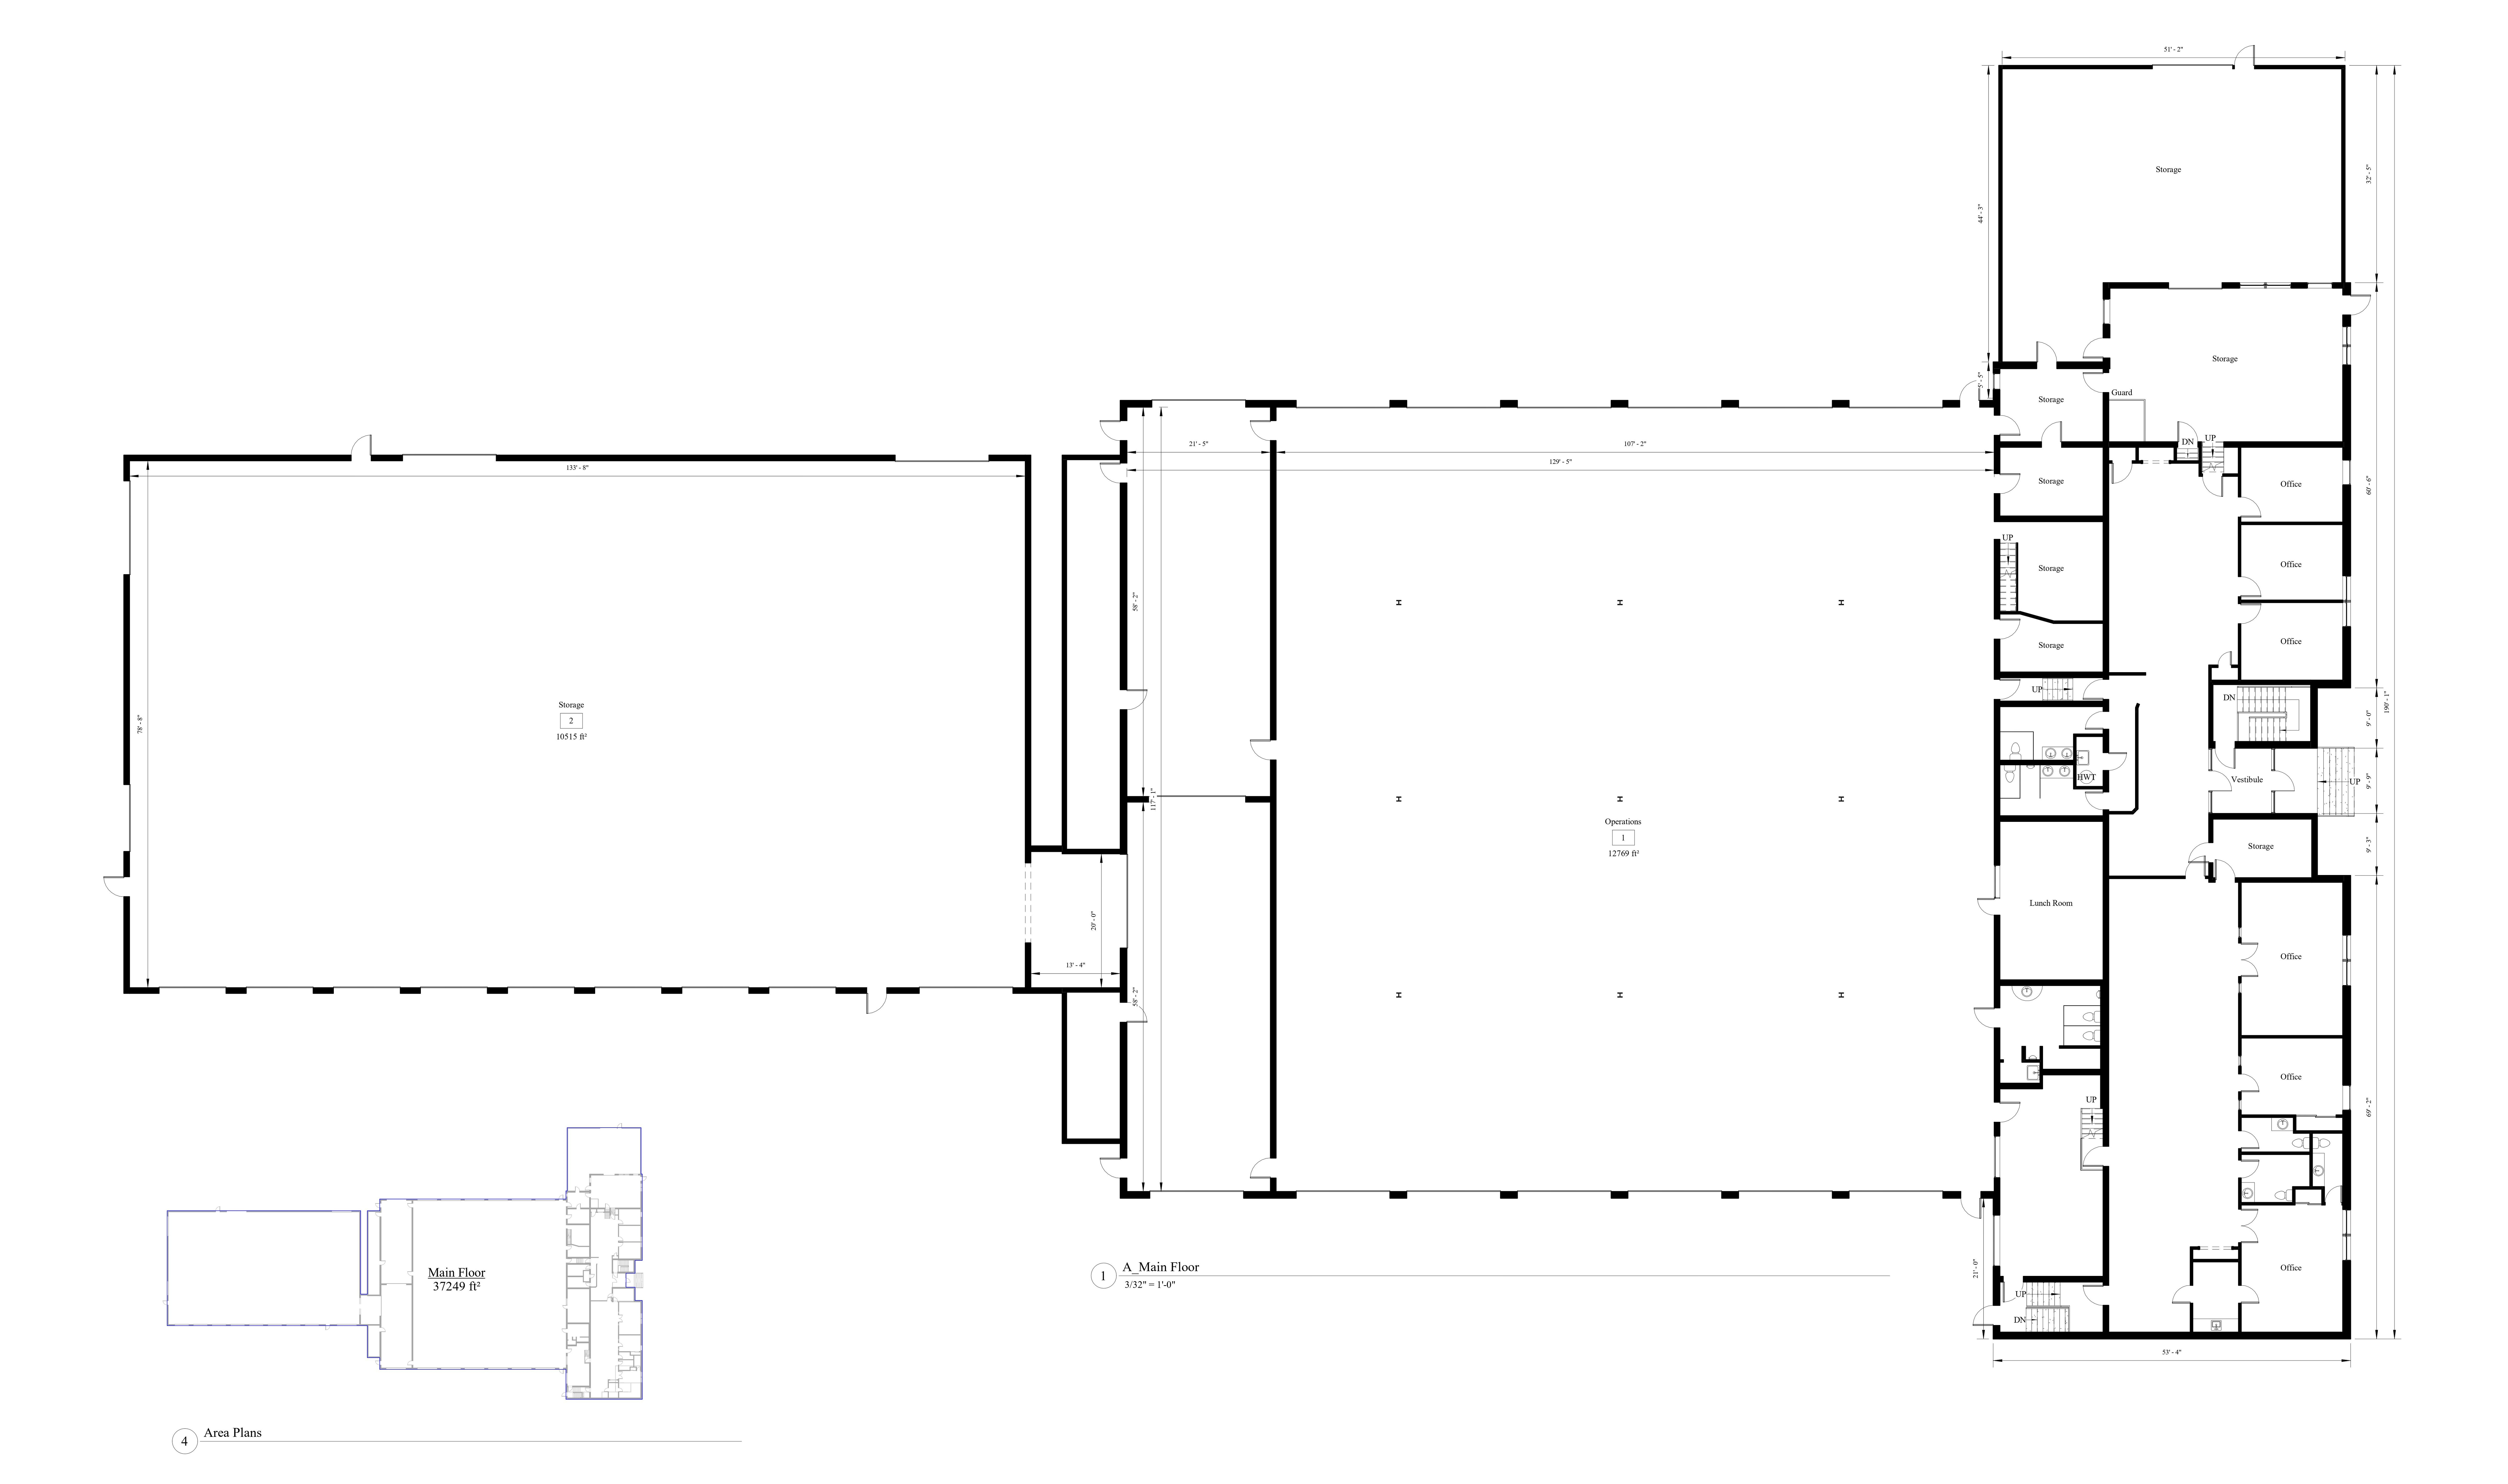 an AutoCad drawing of the floor plan and the Area Analysis plan for a thirty seven thousand, two-hundred and seventy-nine square foot industrial building.